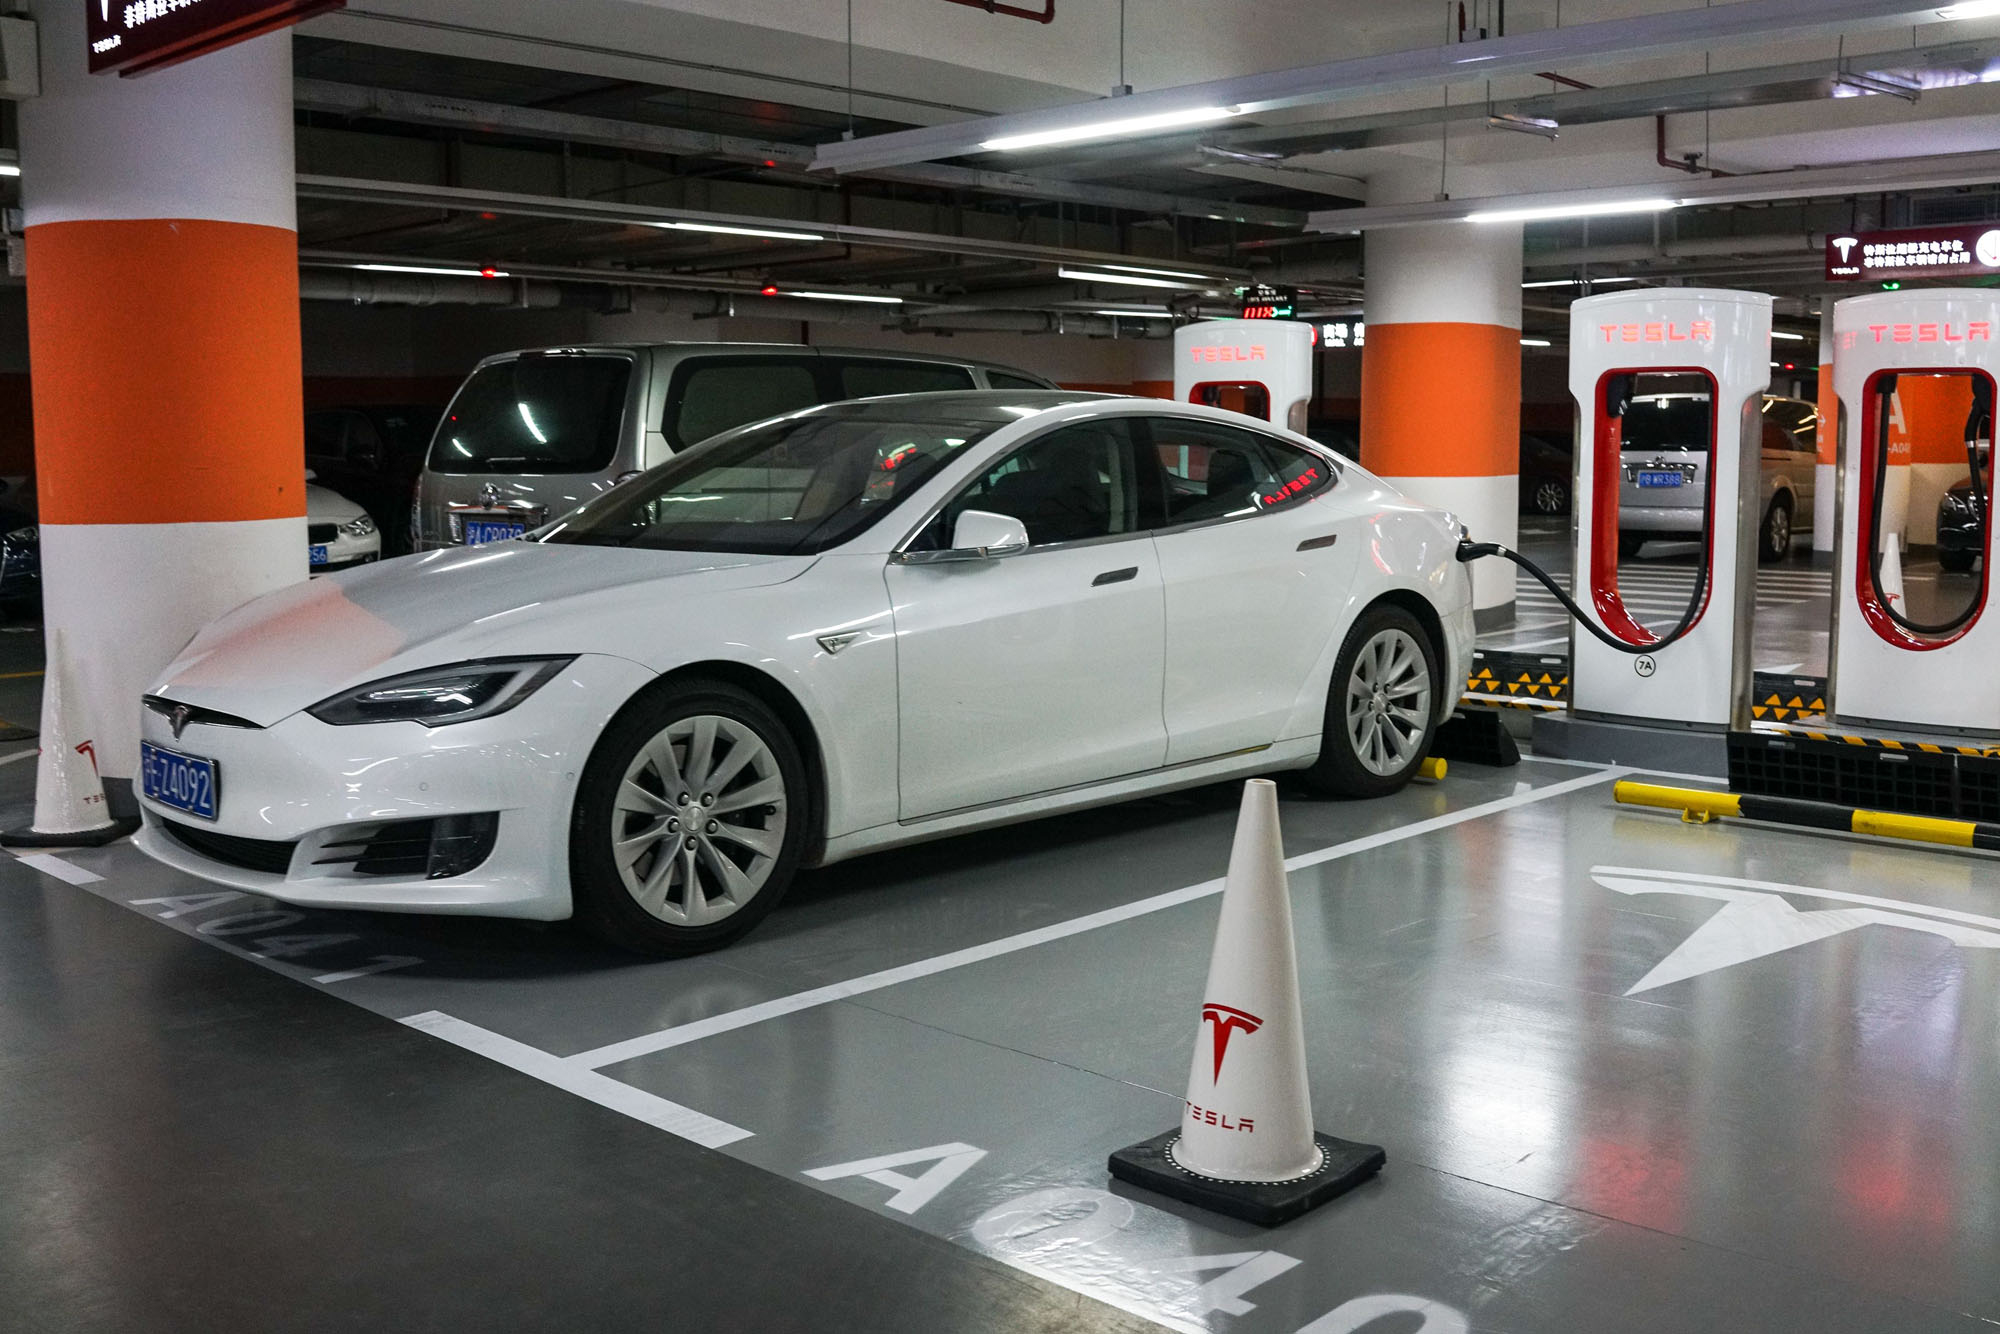 A Tesla car recharges at a Shanghai mall on Monday.  Tesla has reached an agreement with Shanghai authorities that would make it the first foreign automaker to build its own plant in China, putting the U.S. firm in the driver's seat in the world's biggest electric-vehicle market. | AFP-JIJI